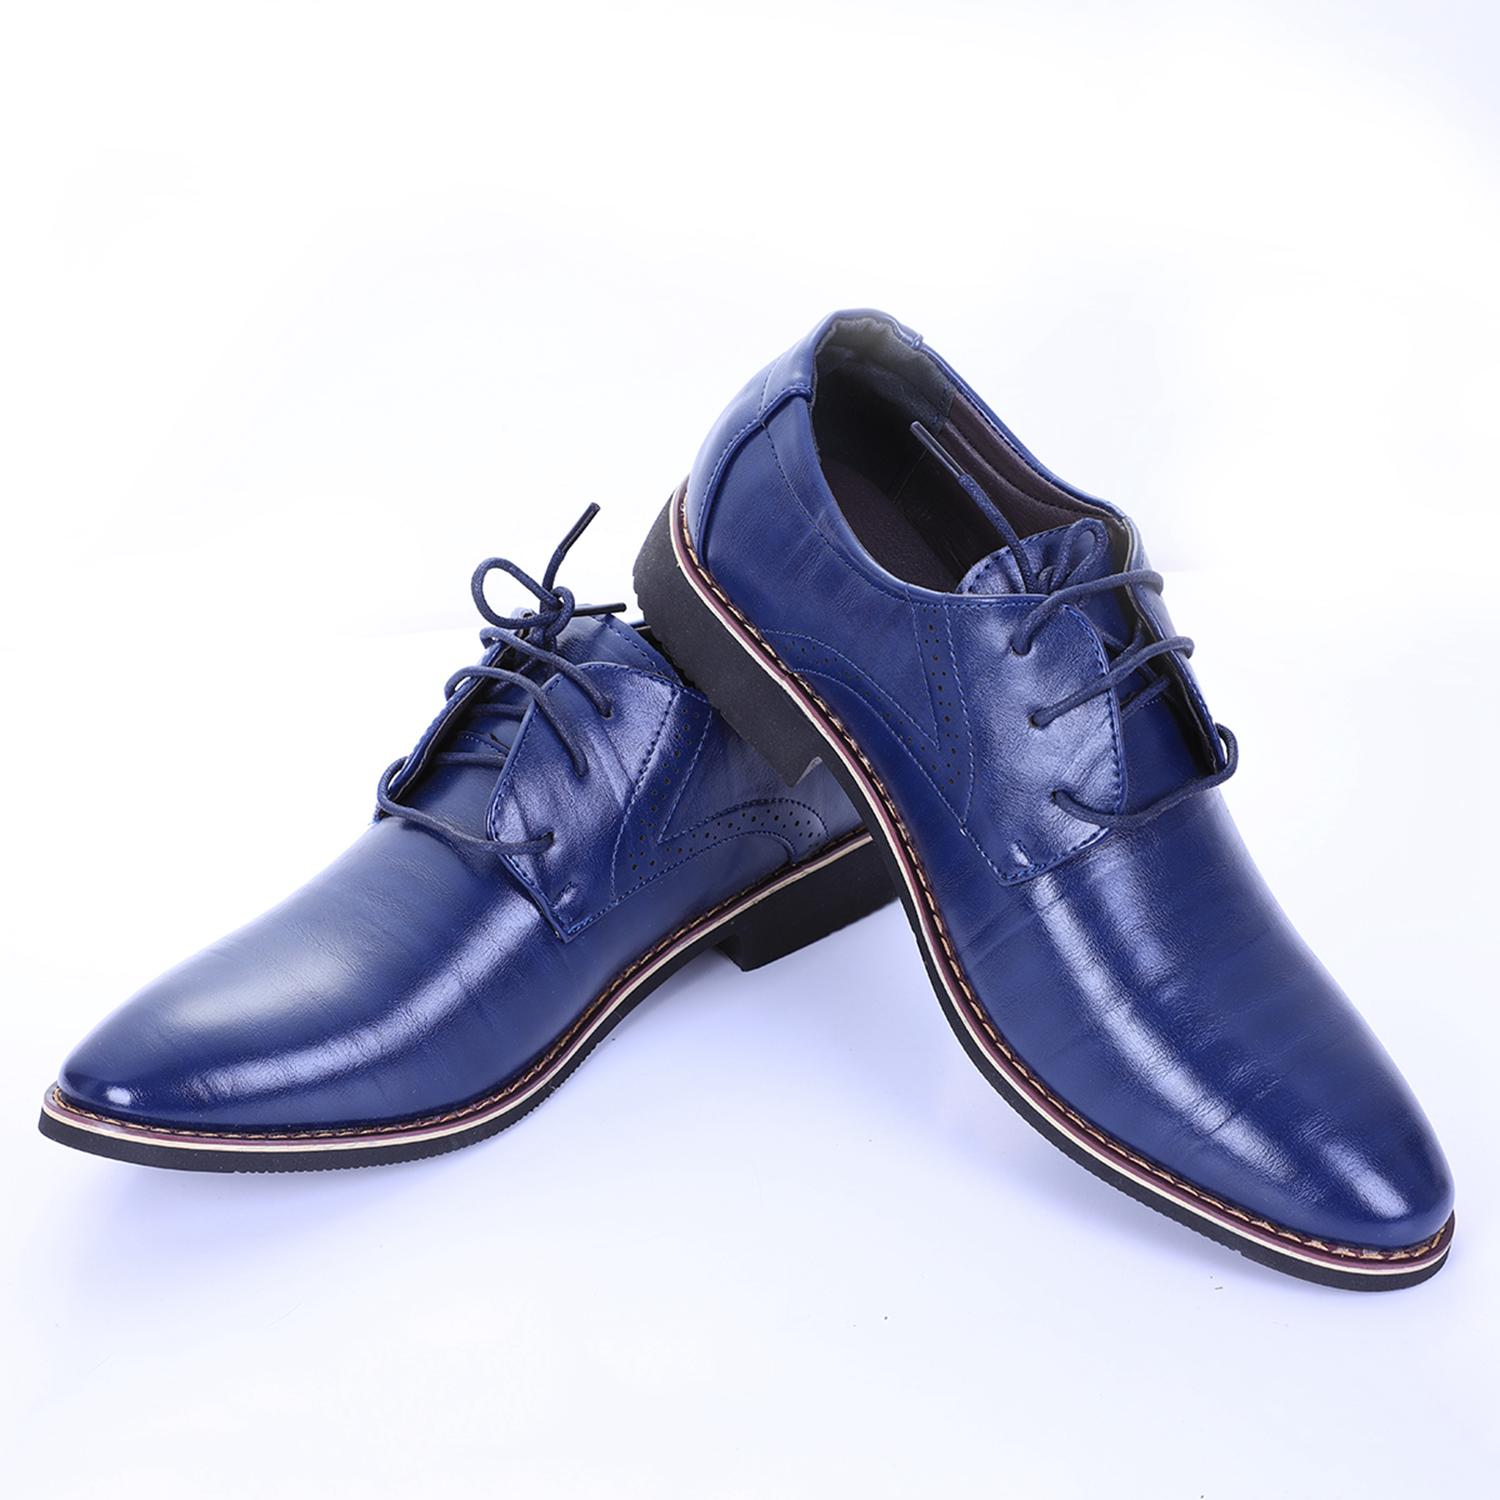 Men shoes&Men Dress Shoes Quality Genuine Leather Business Oxfords Shoes Fashion Groom Wedding Classic Flat Shoes Size 38-46 2017 new arrival top quality men genuine leather dress shoes business men oxfords classical gentleman shoes flat shoes 38 44